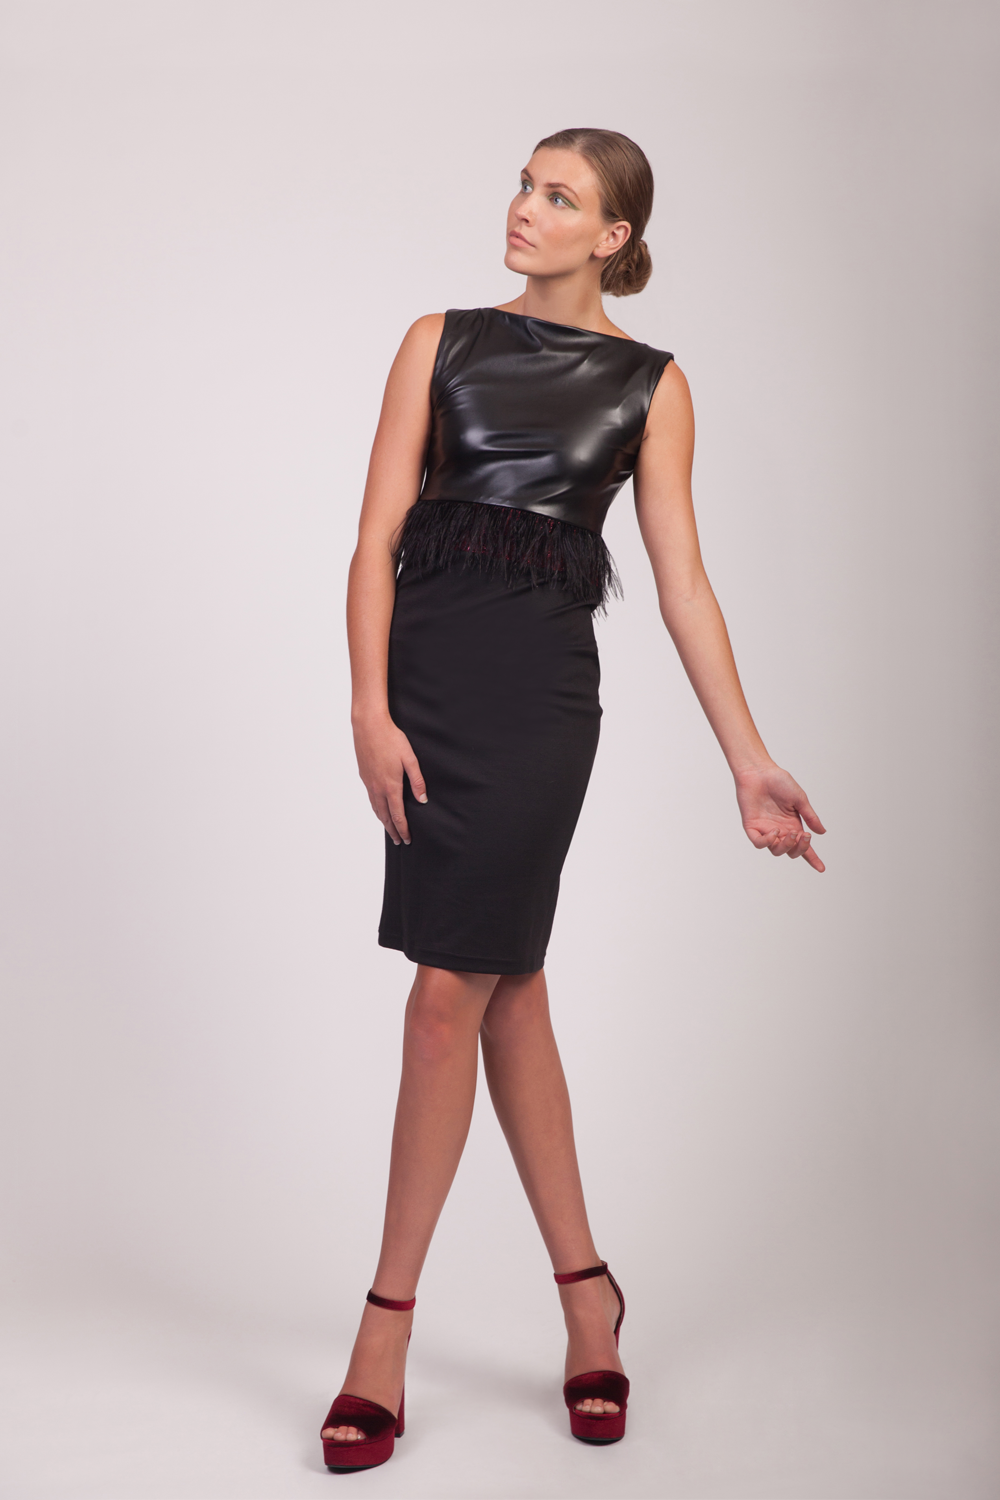 blackpencildress (medium).png